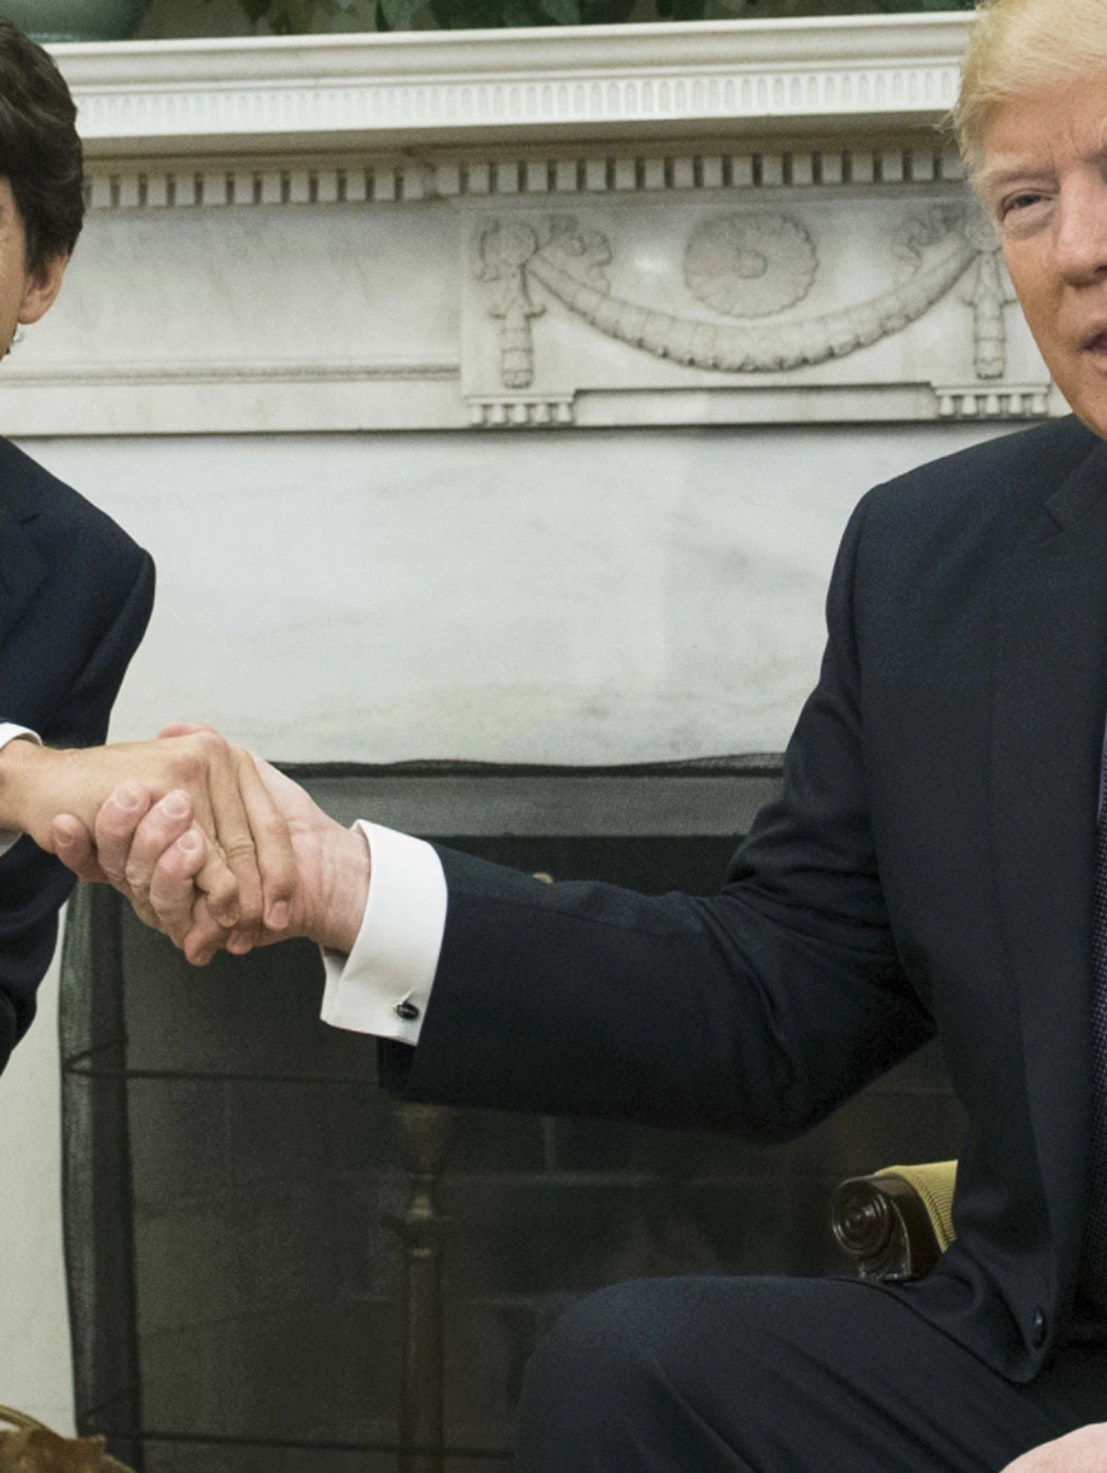 Donald Trump and Justin Trudeau met for the first time and shared many awkward handshakes.